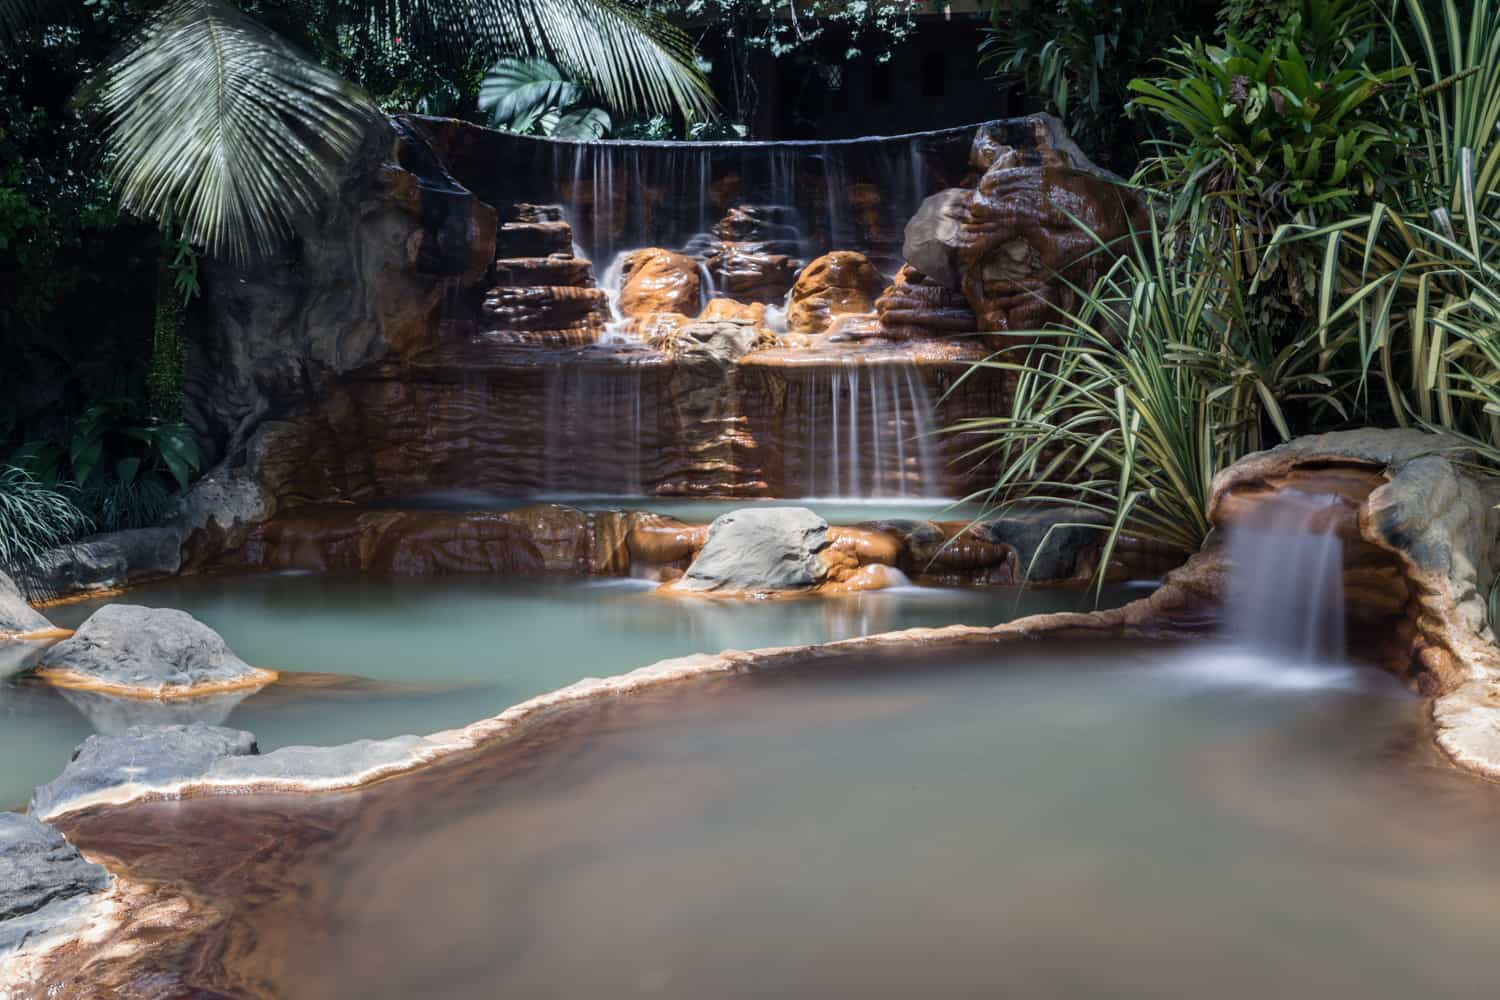 Thermal pool and waterfalls at Treetops open-air area for weddings at The Springs Resor, Arenal